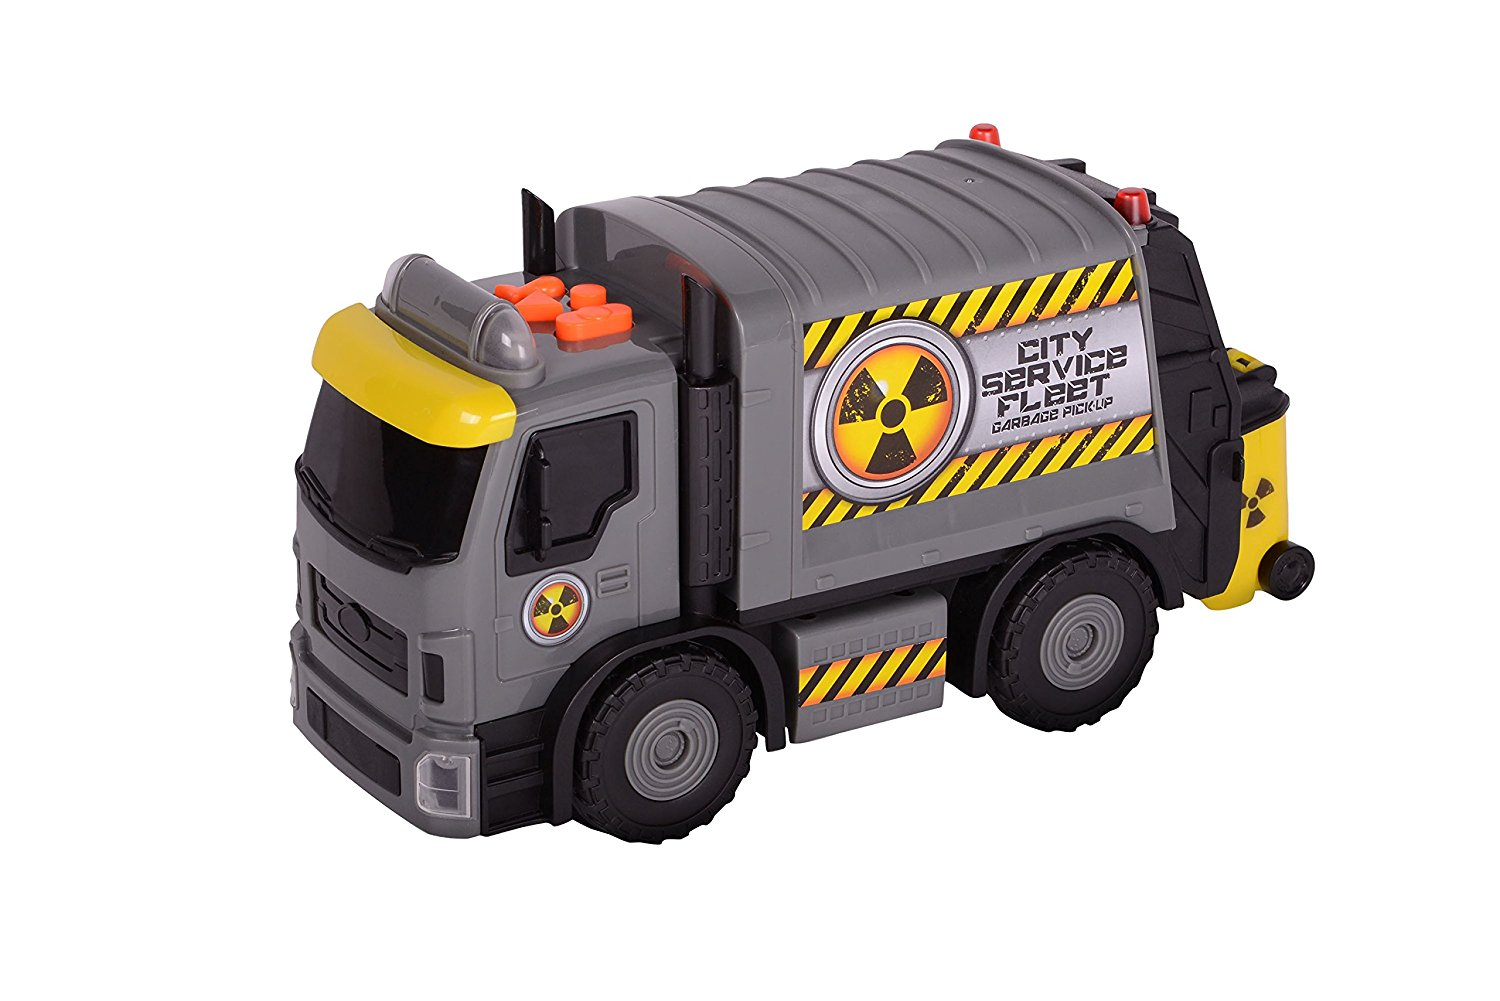 Toy State Road Rippers City Service Fleet Garbage Truck - Colors May Vary